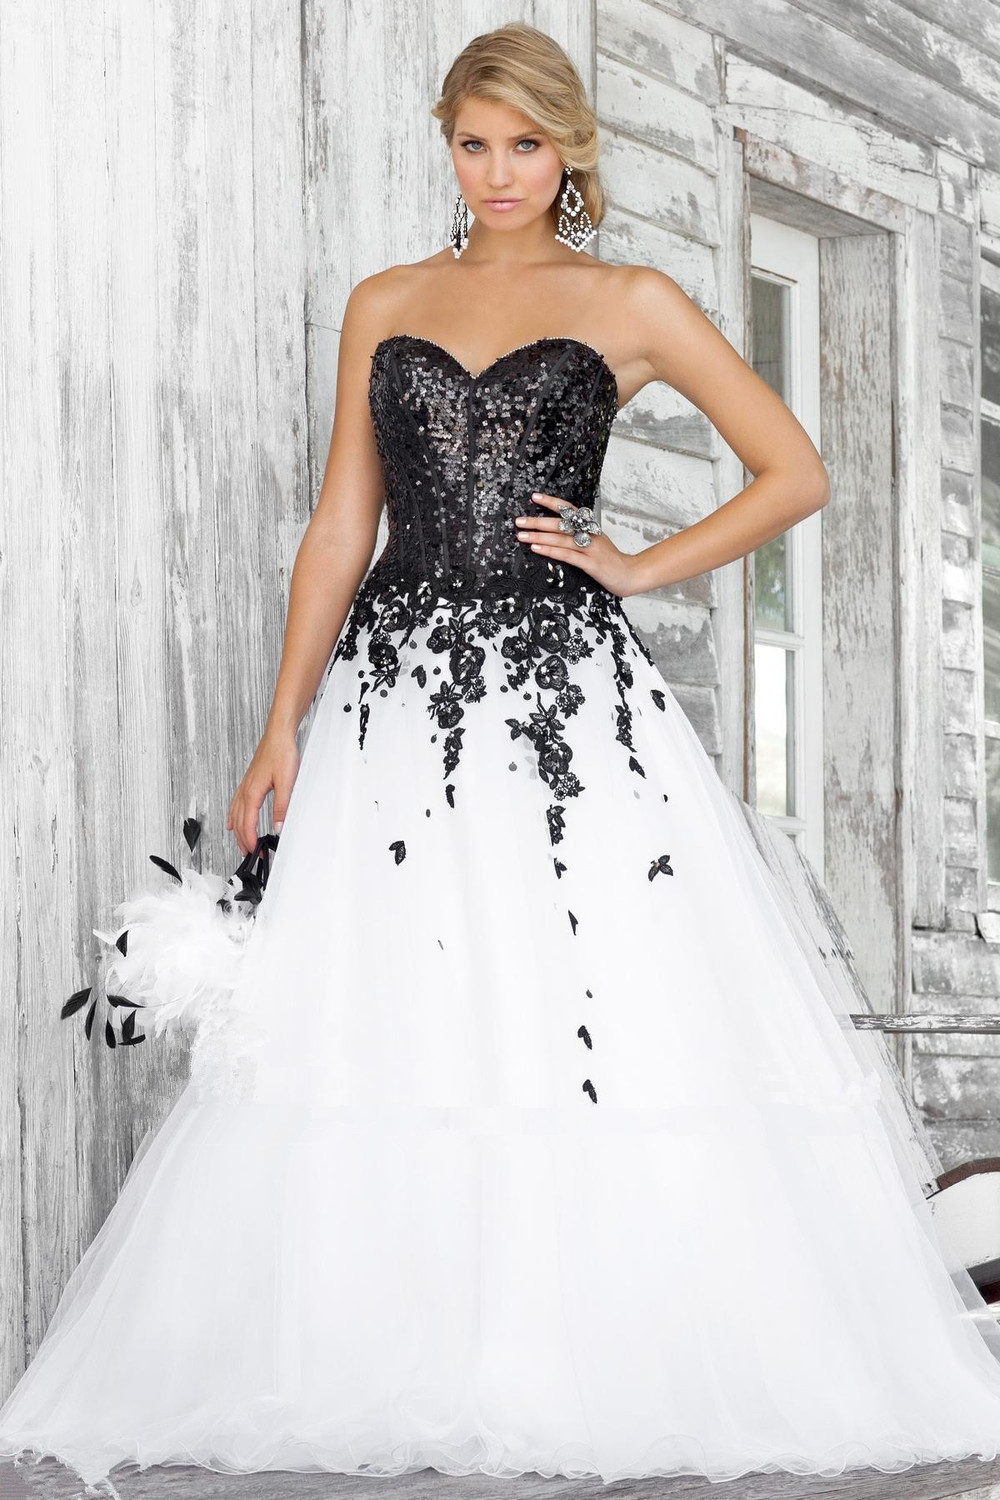 Compare Prices on White Black Wedding Dress- Online Shopping/Buy ...